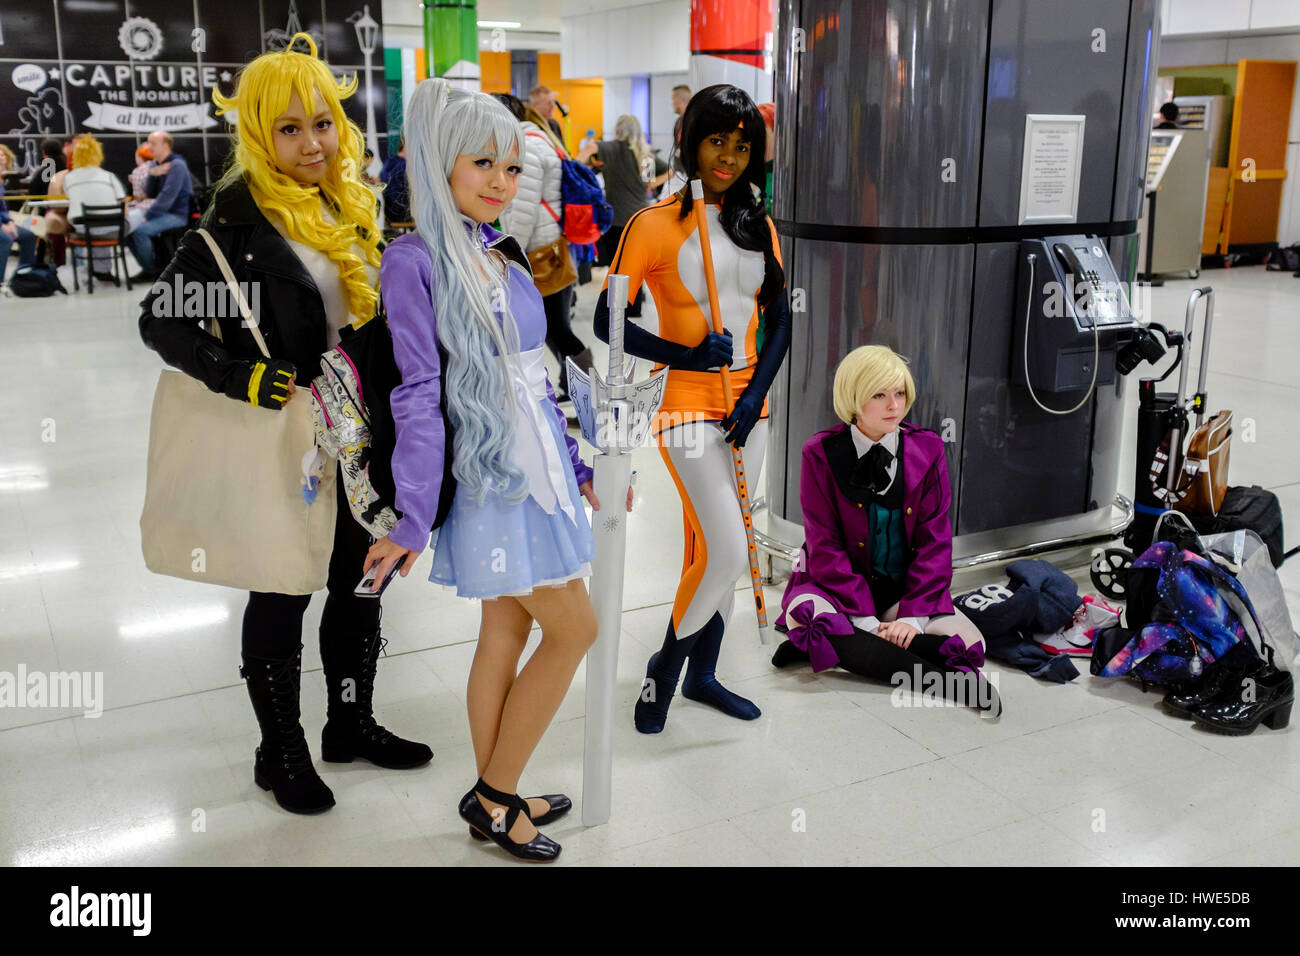 Group of young females in anime costumes attend mcm comic con birmingham uk 2017